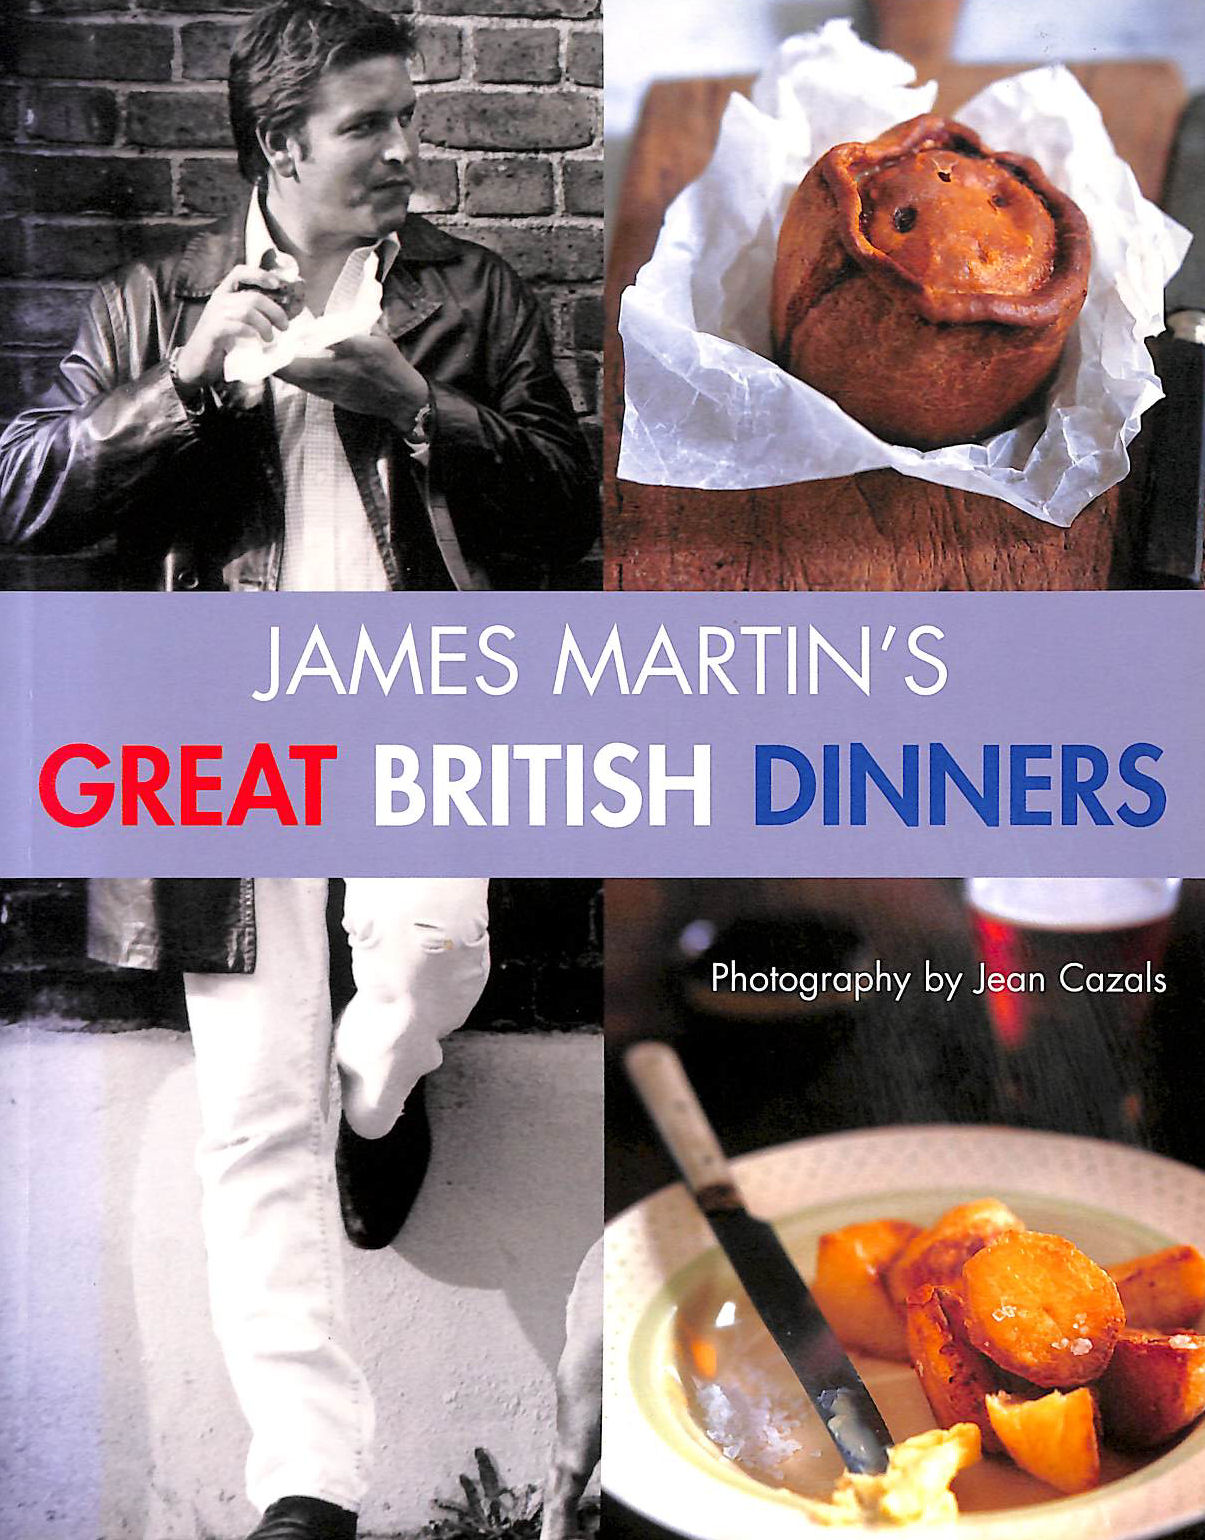 Image for James martin's great british dinners